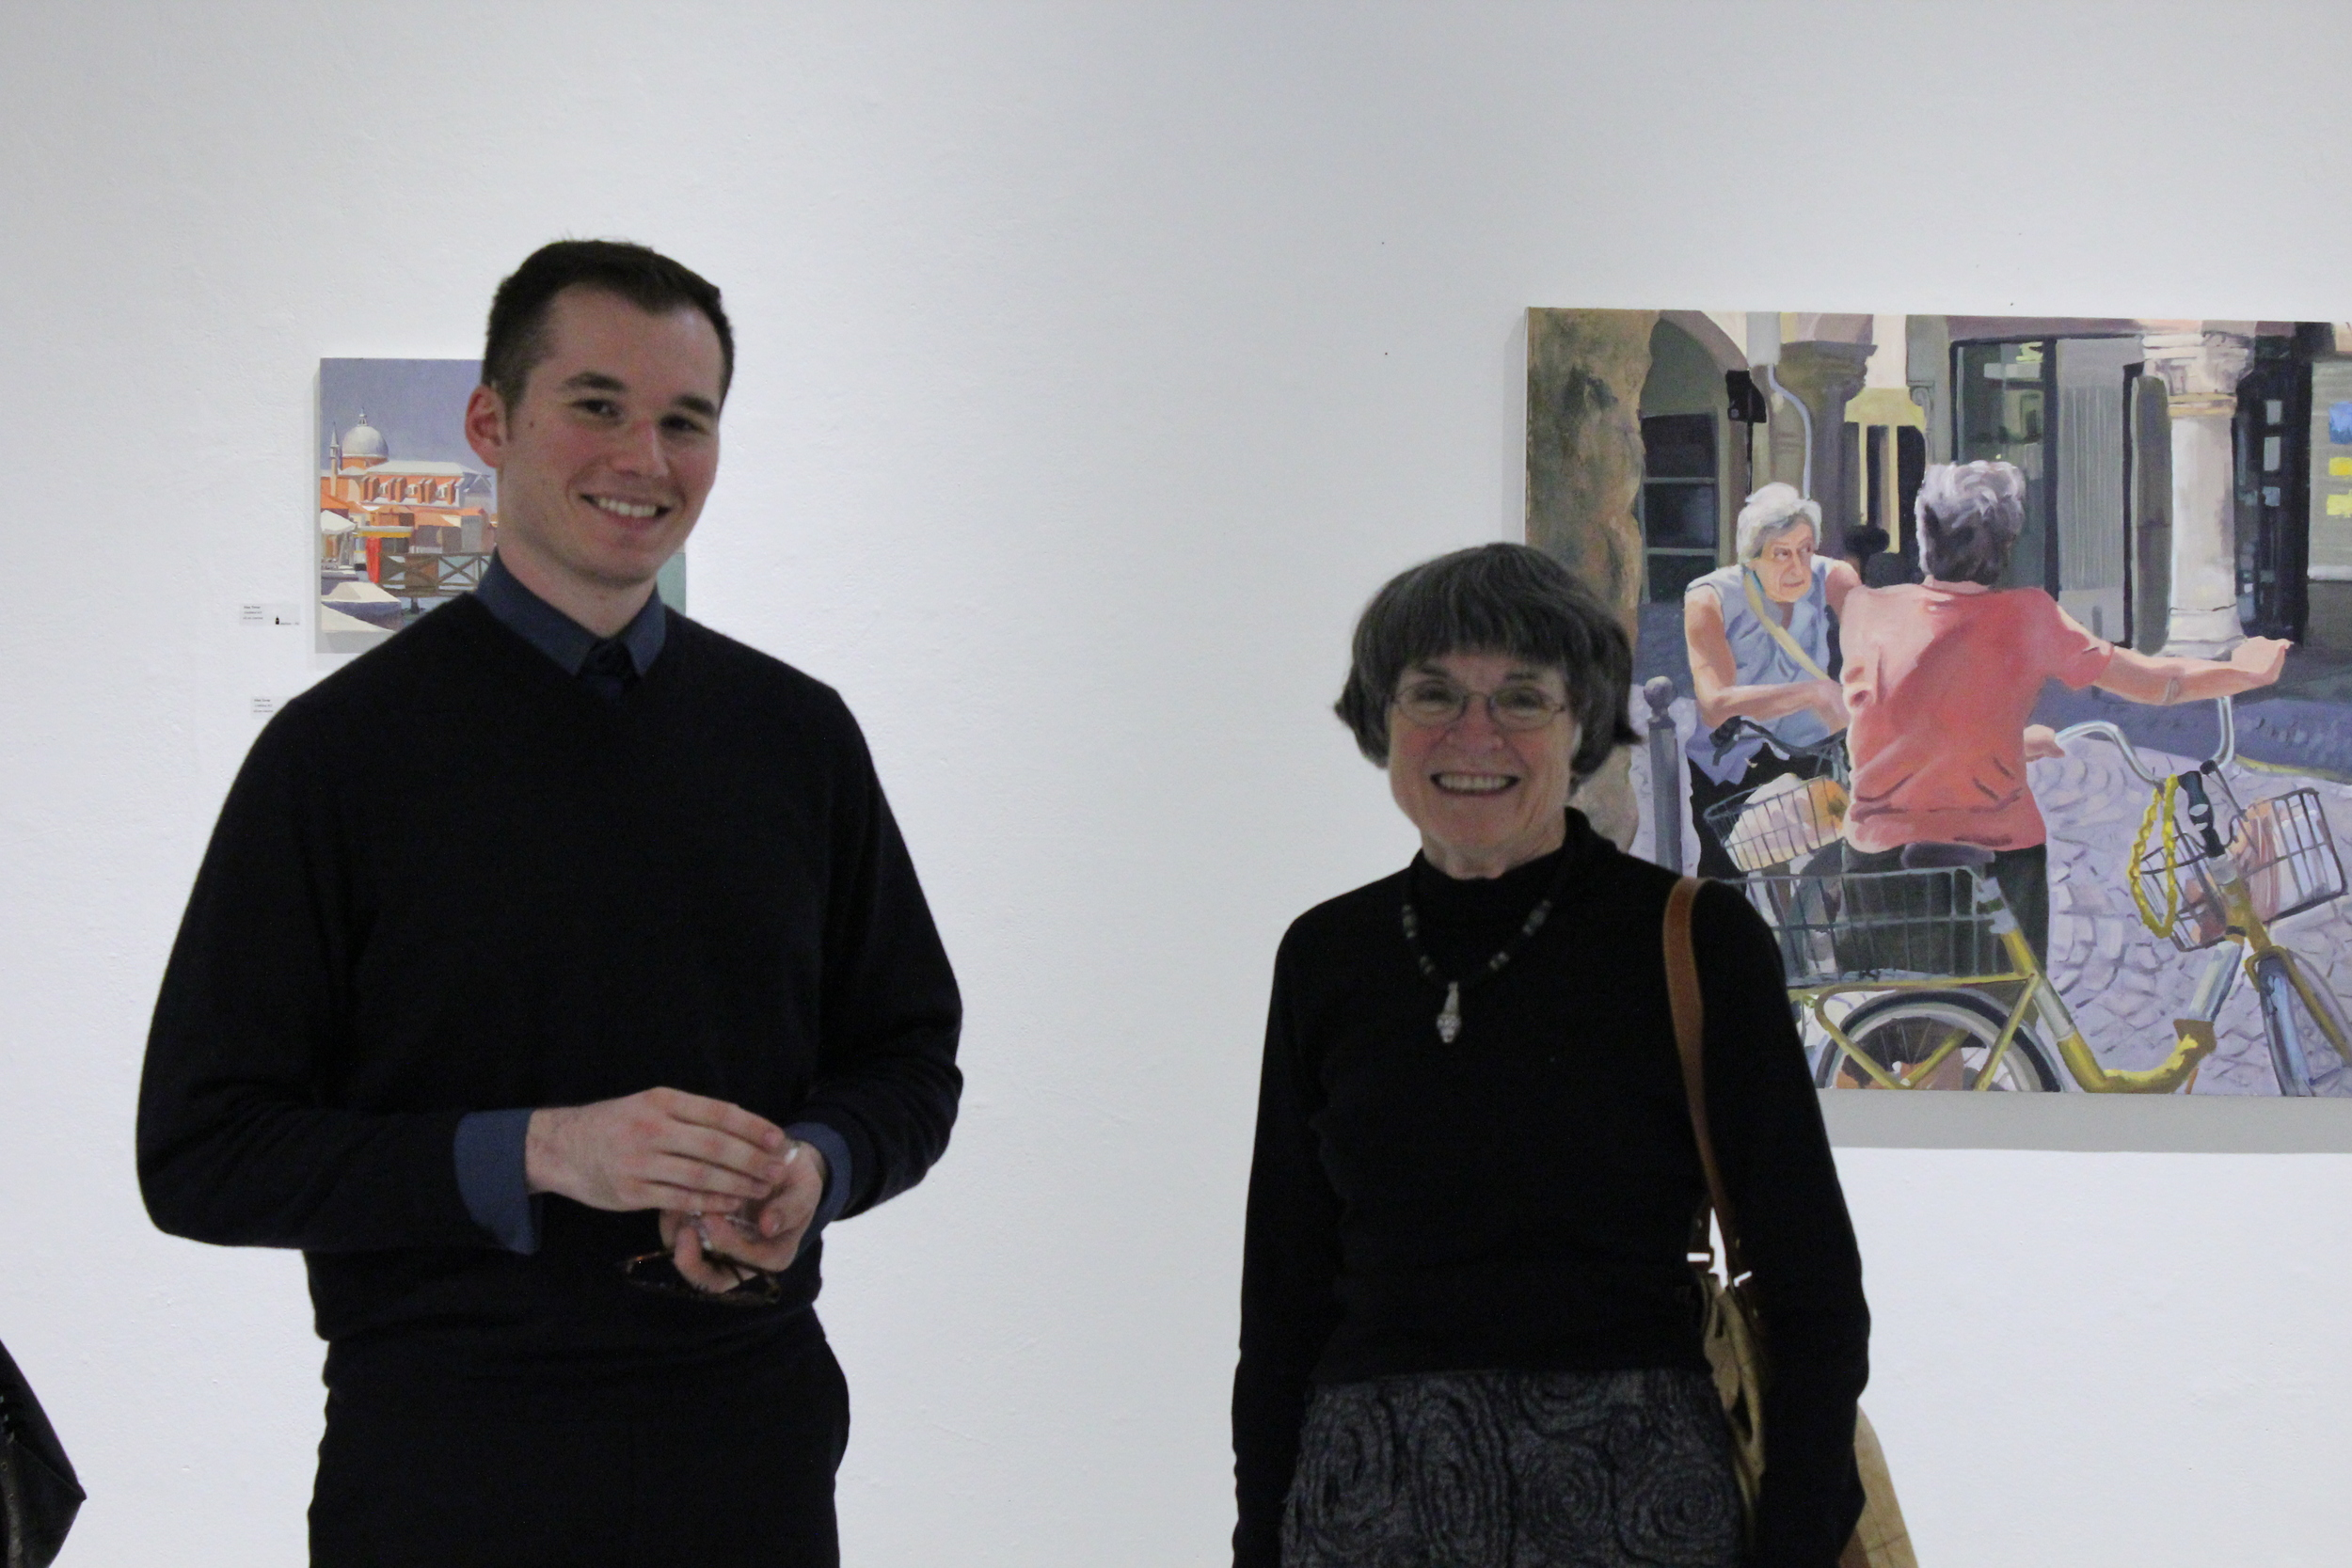 Art history faculty/staff Joseph Kopta and Dorothy Shepard at the 2012 Exhibition opening.